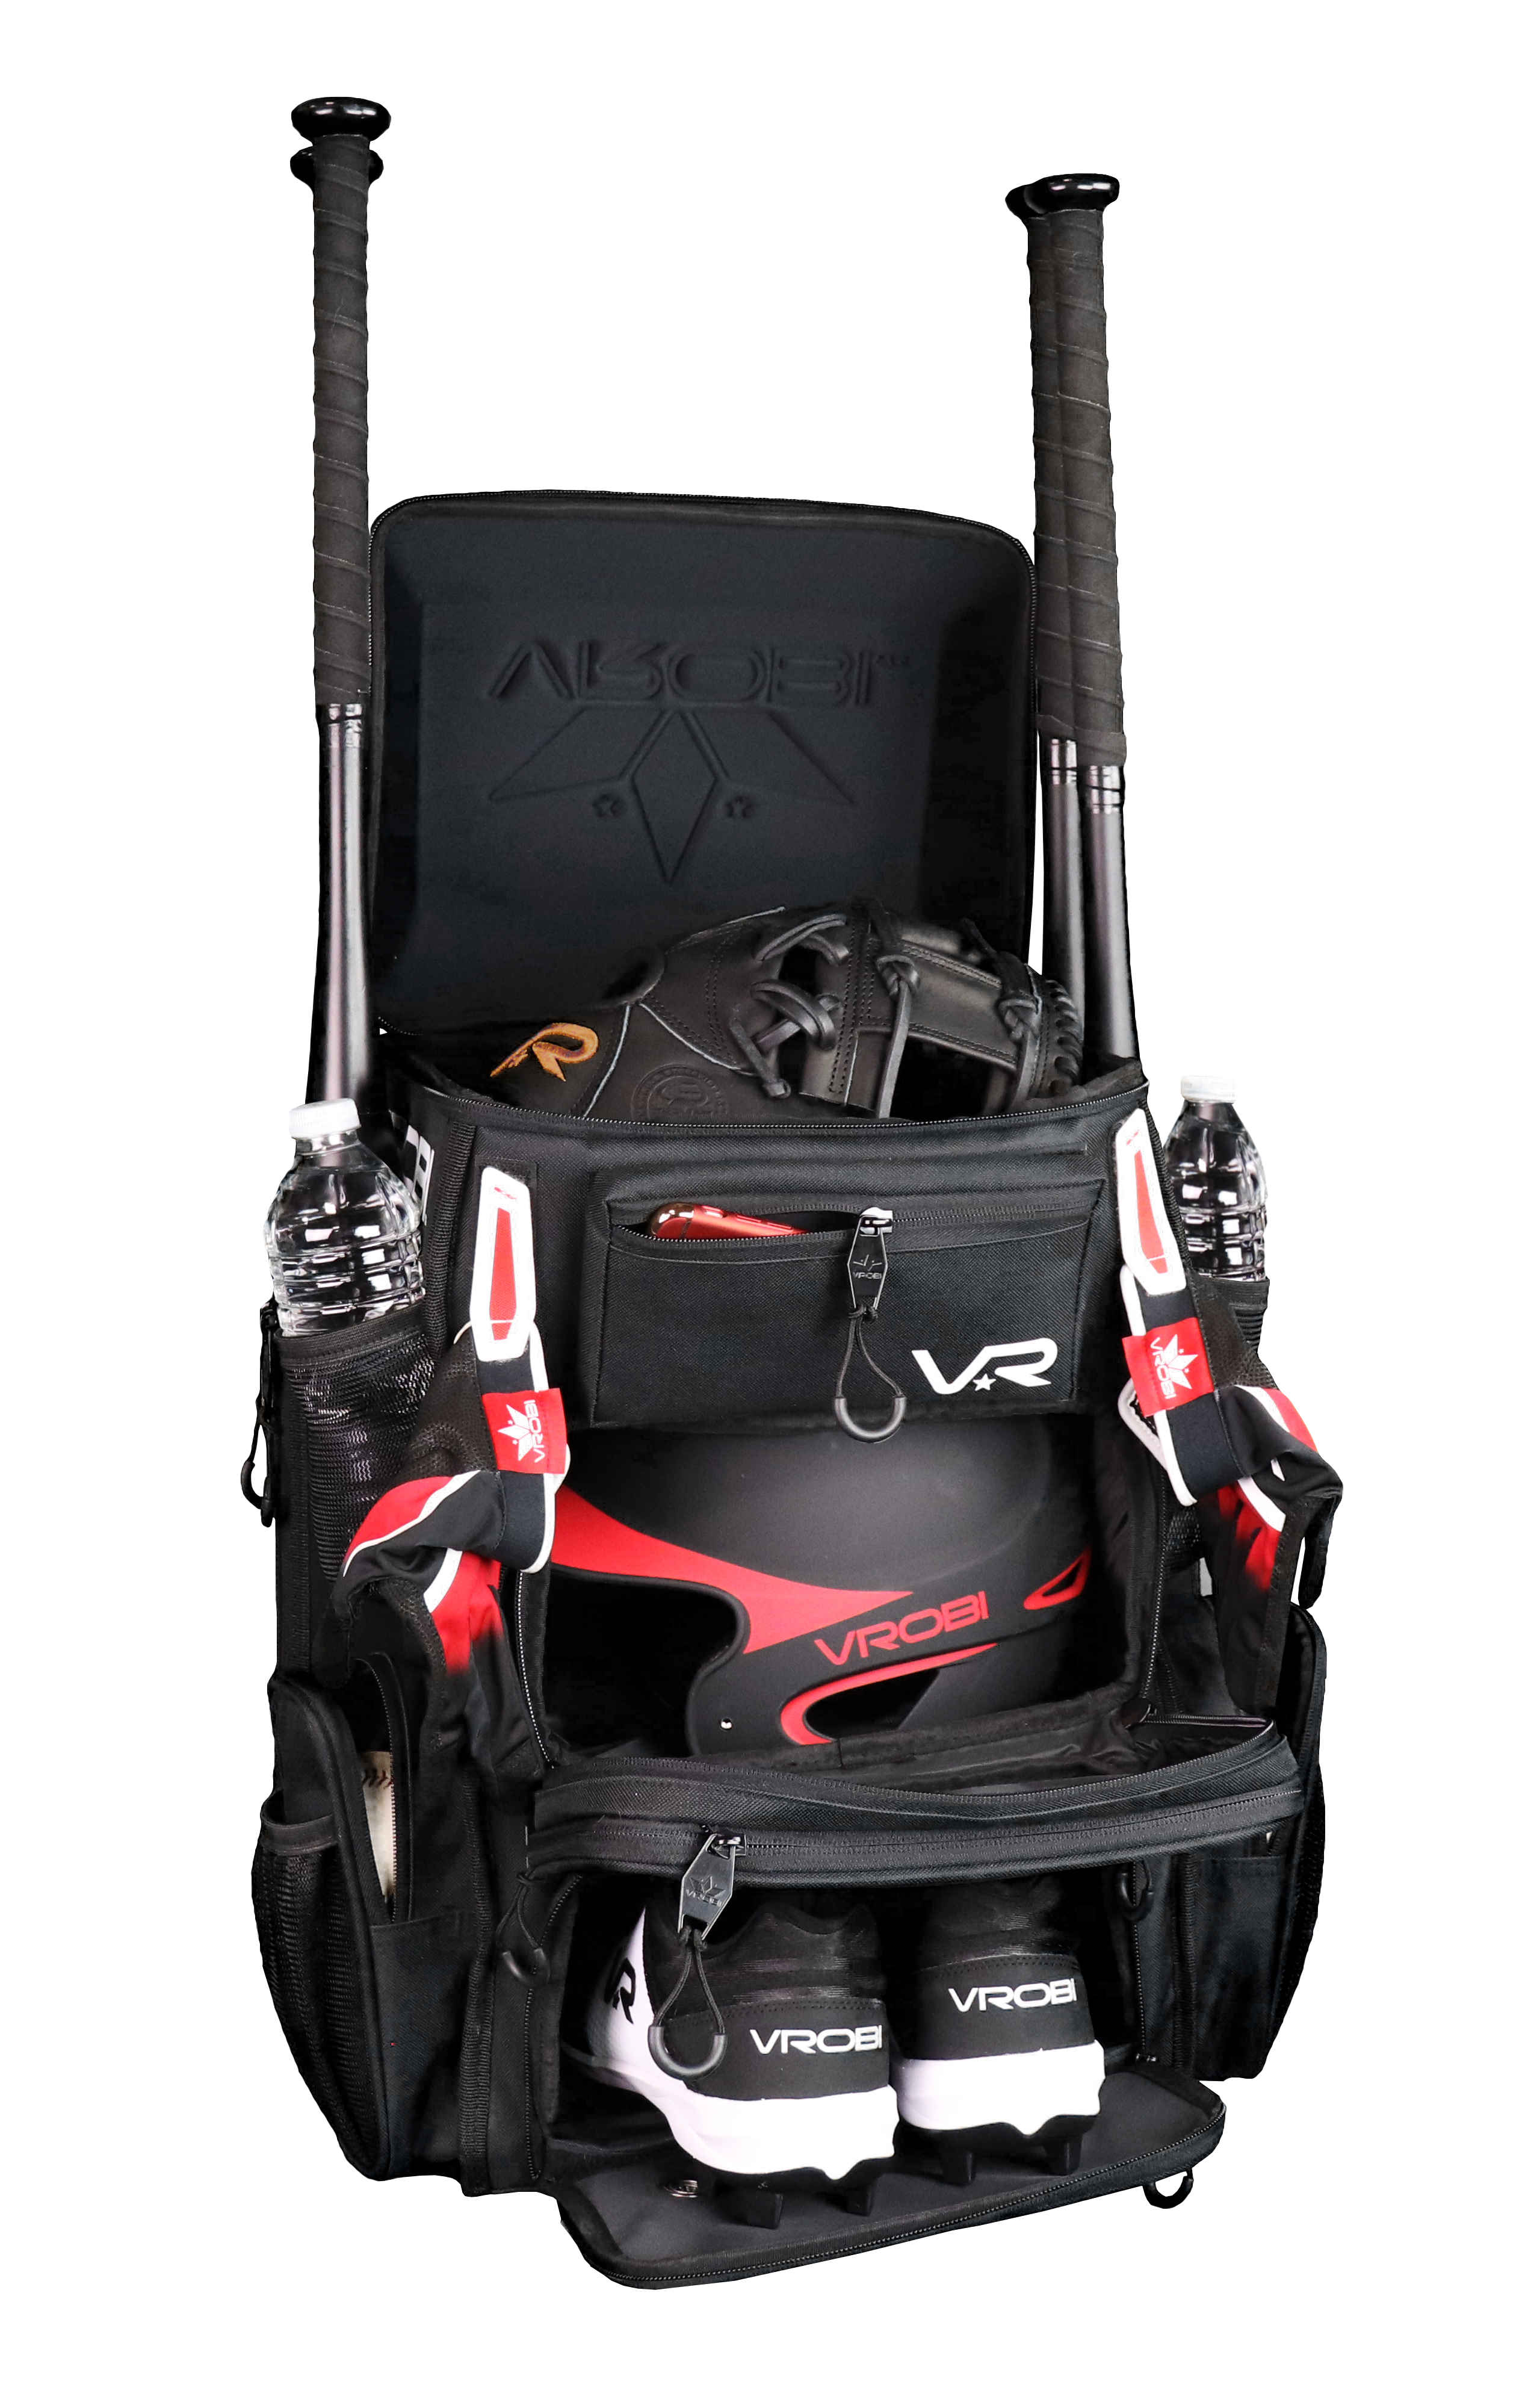 Soldier HS Reloaded Bat Pack packed with gear showcasing hard shell glove compartment, 4 bat holders, footwear compartment. Designed for Youth Baseball, Adult Baseball, Slowpitch Softball and Fastpitch Softball Players.